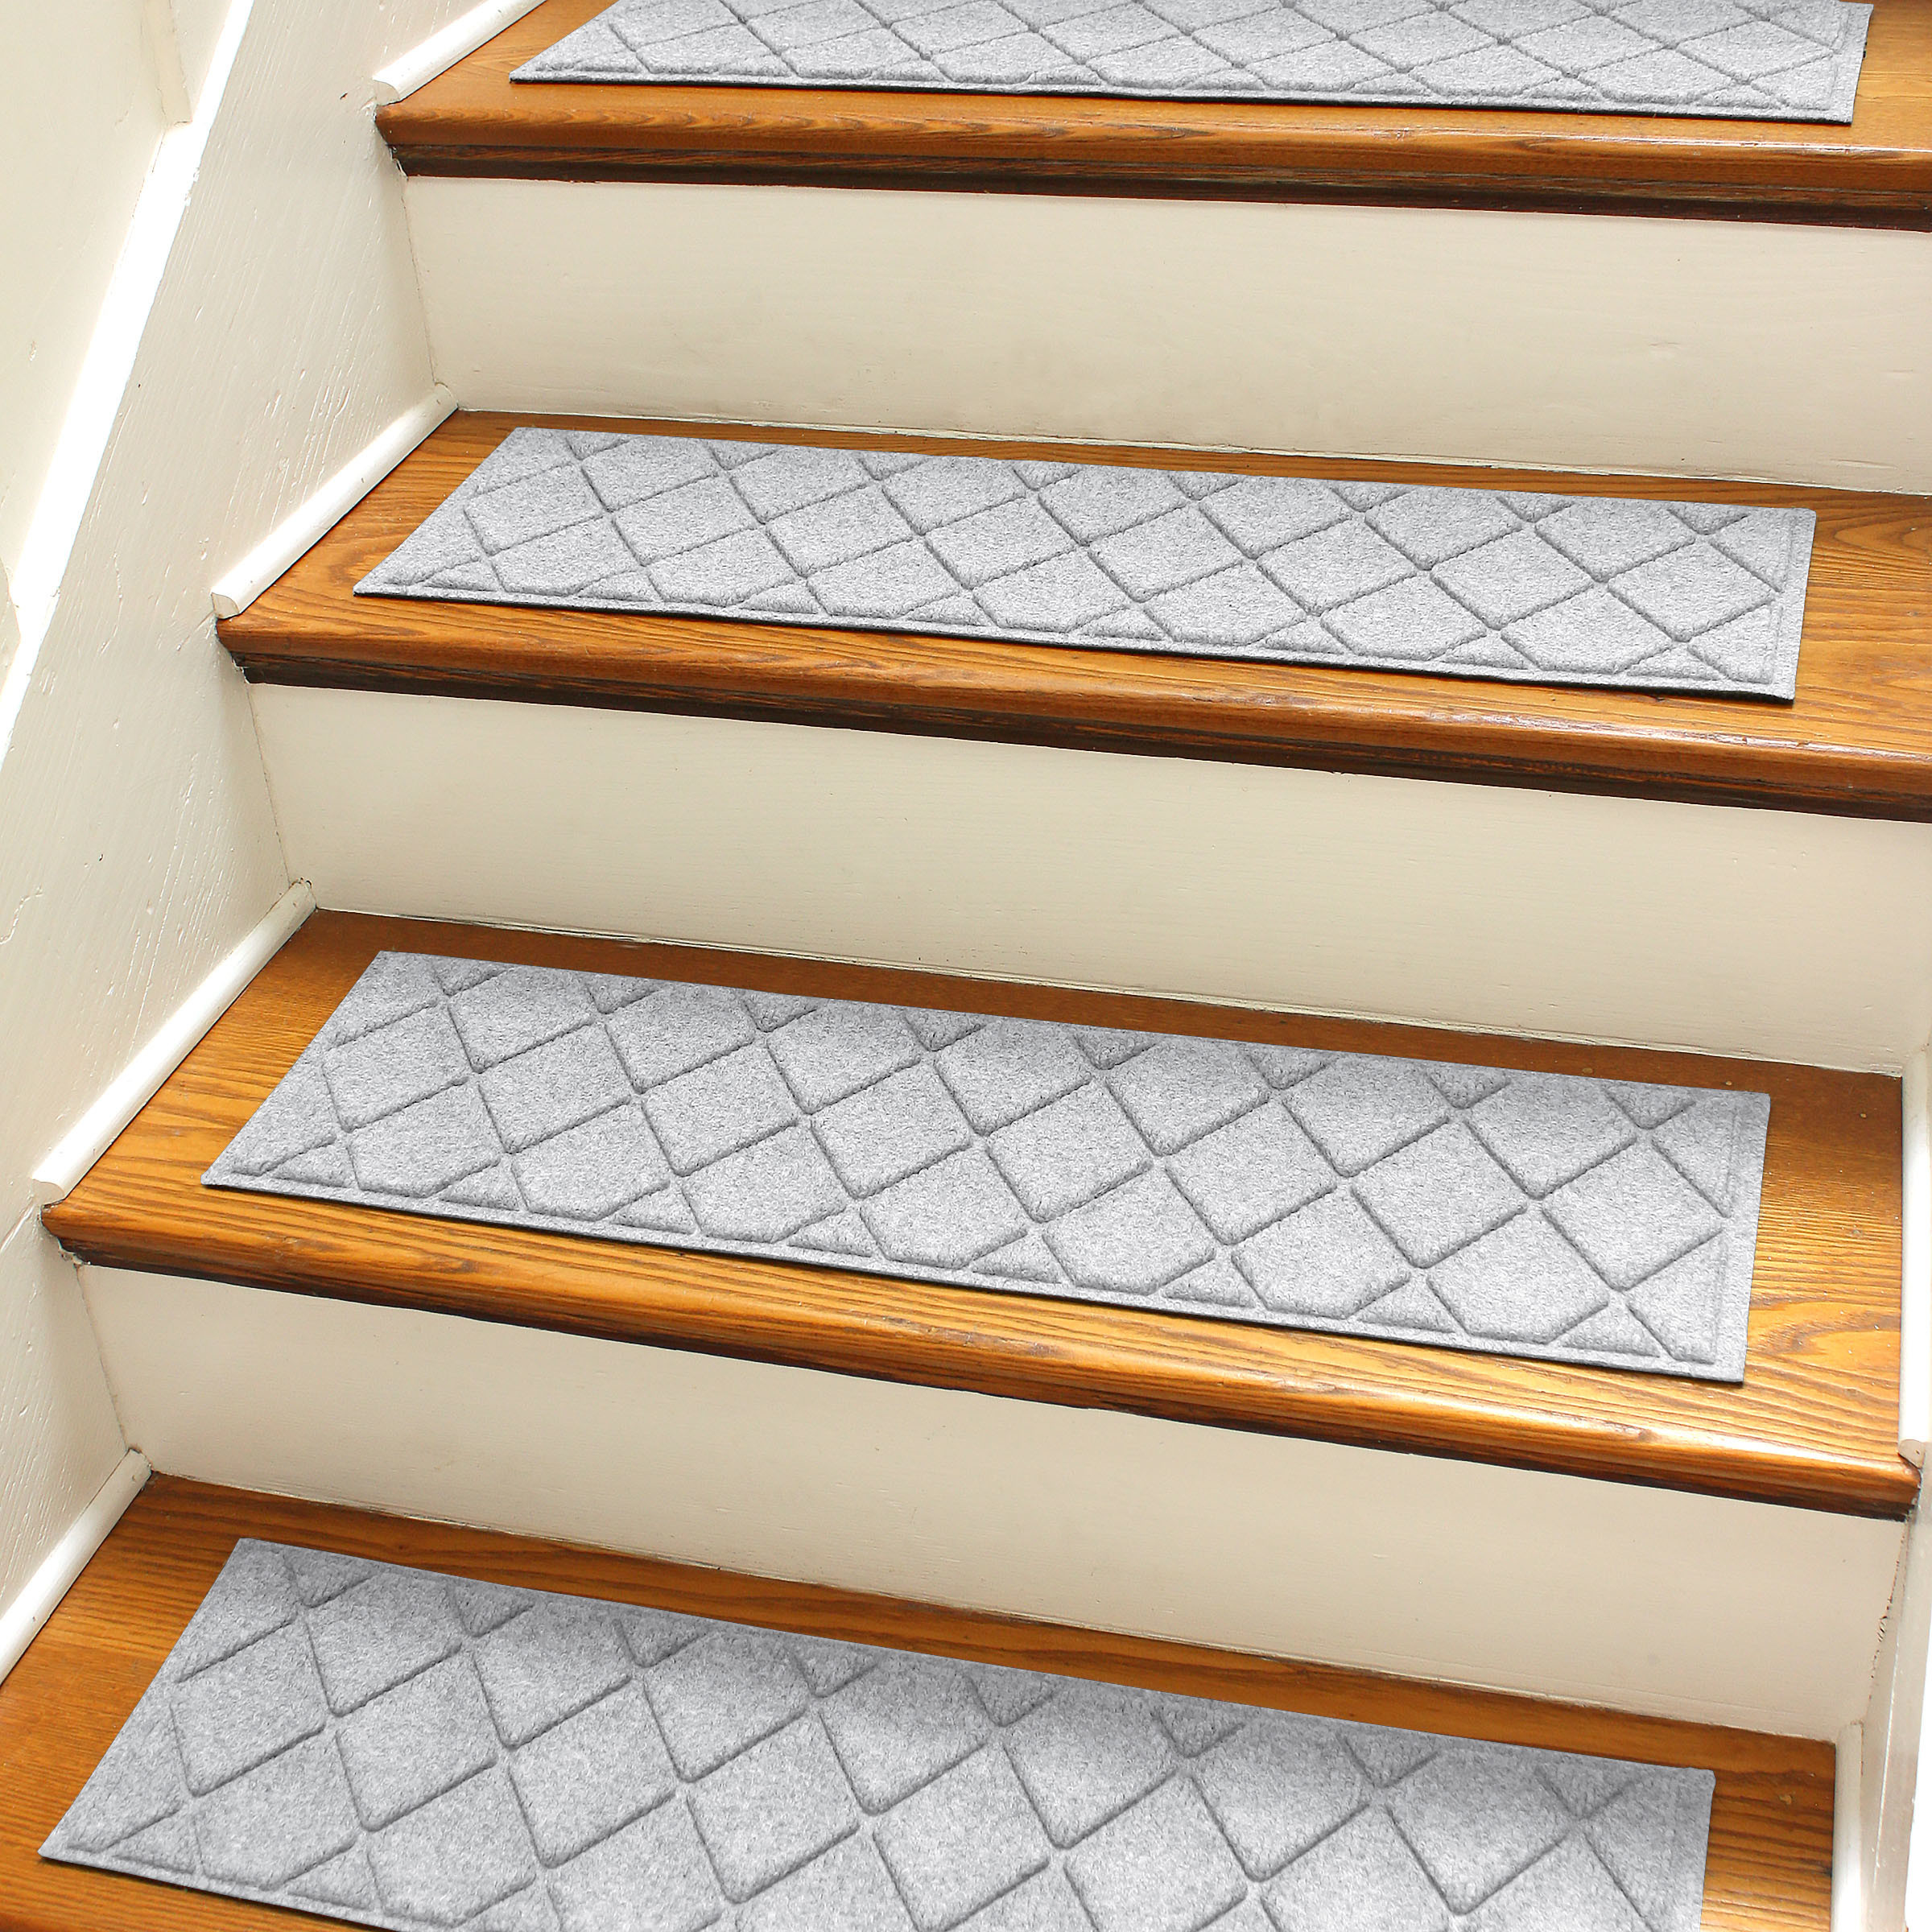 Stair Tread Set Via Wayfair